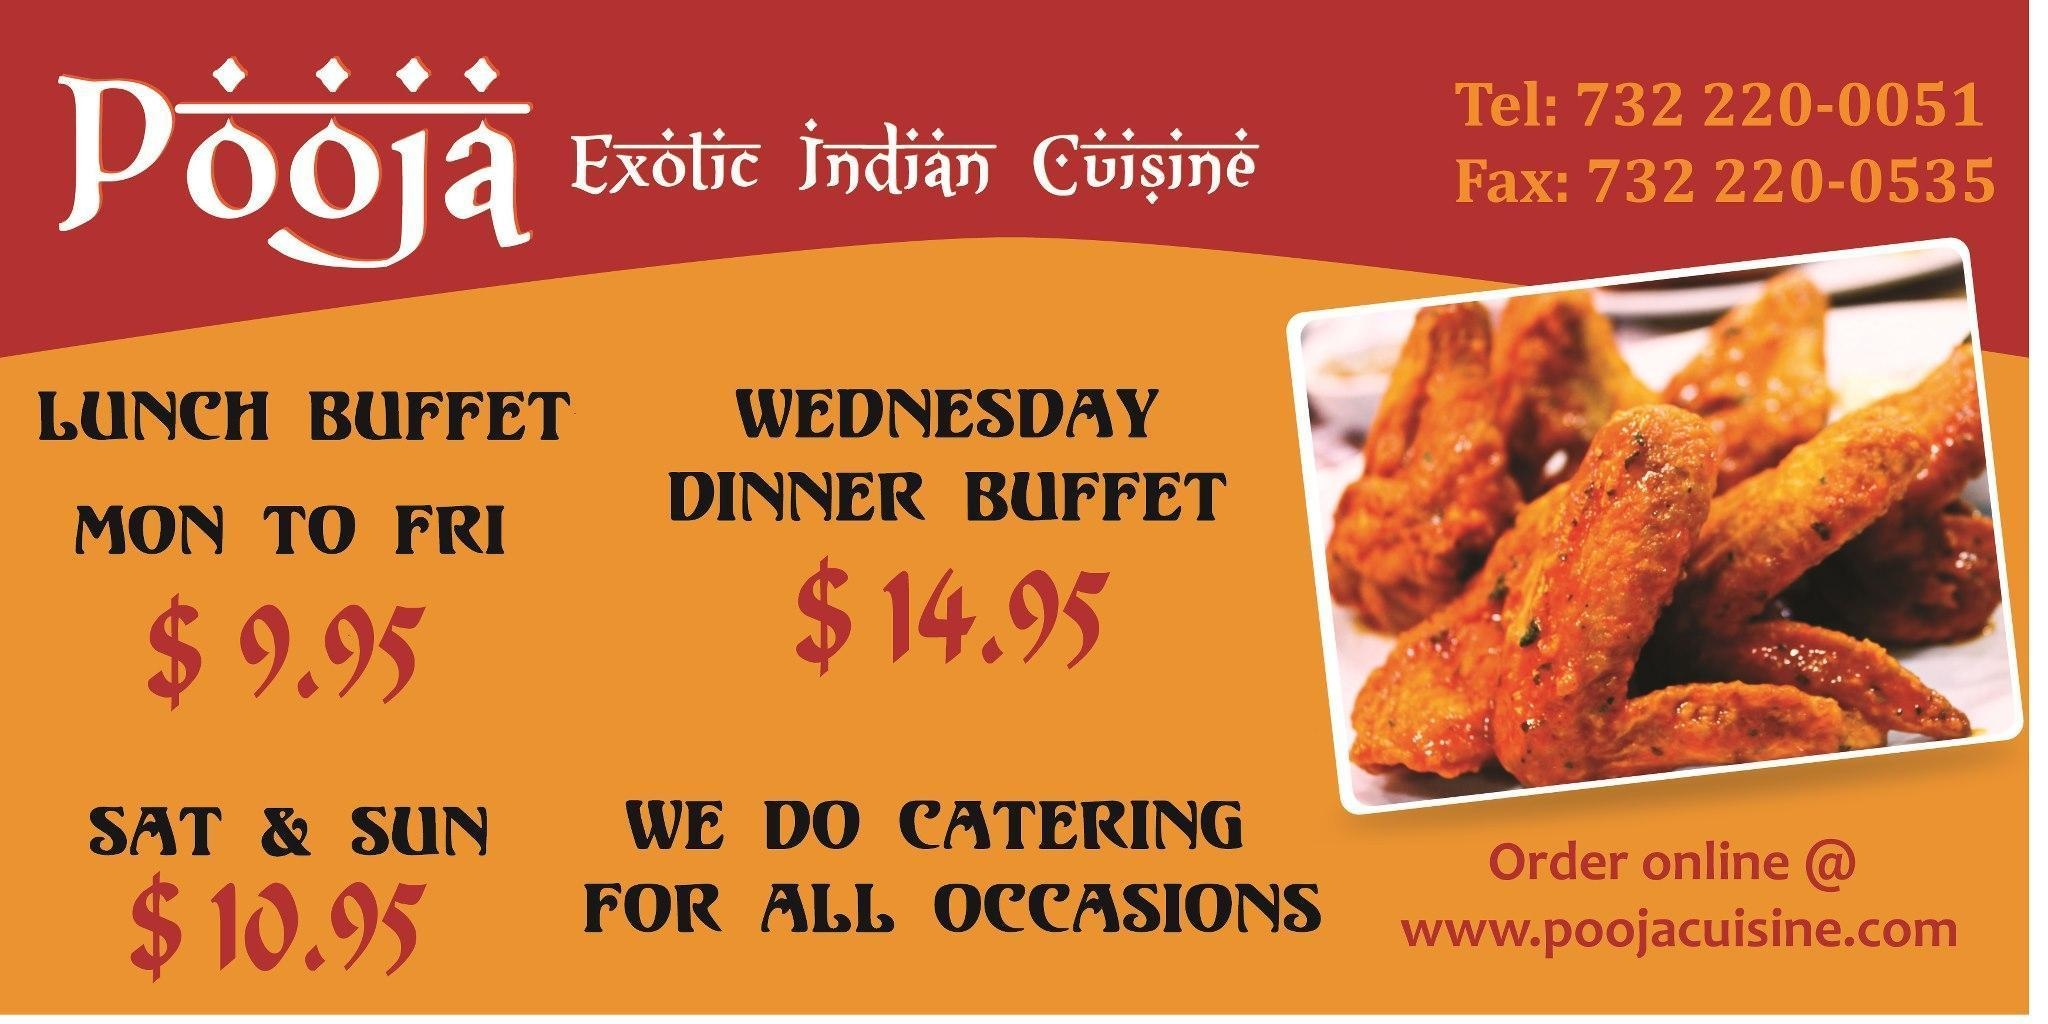 Pooja restaurant catering services en somerset nj for Aroma indian cuisine coupon